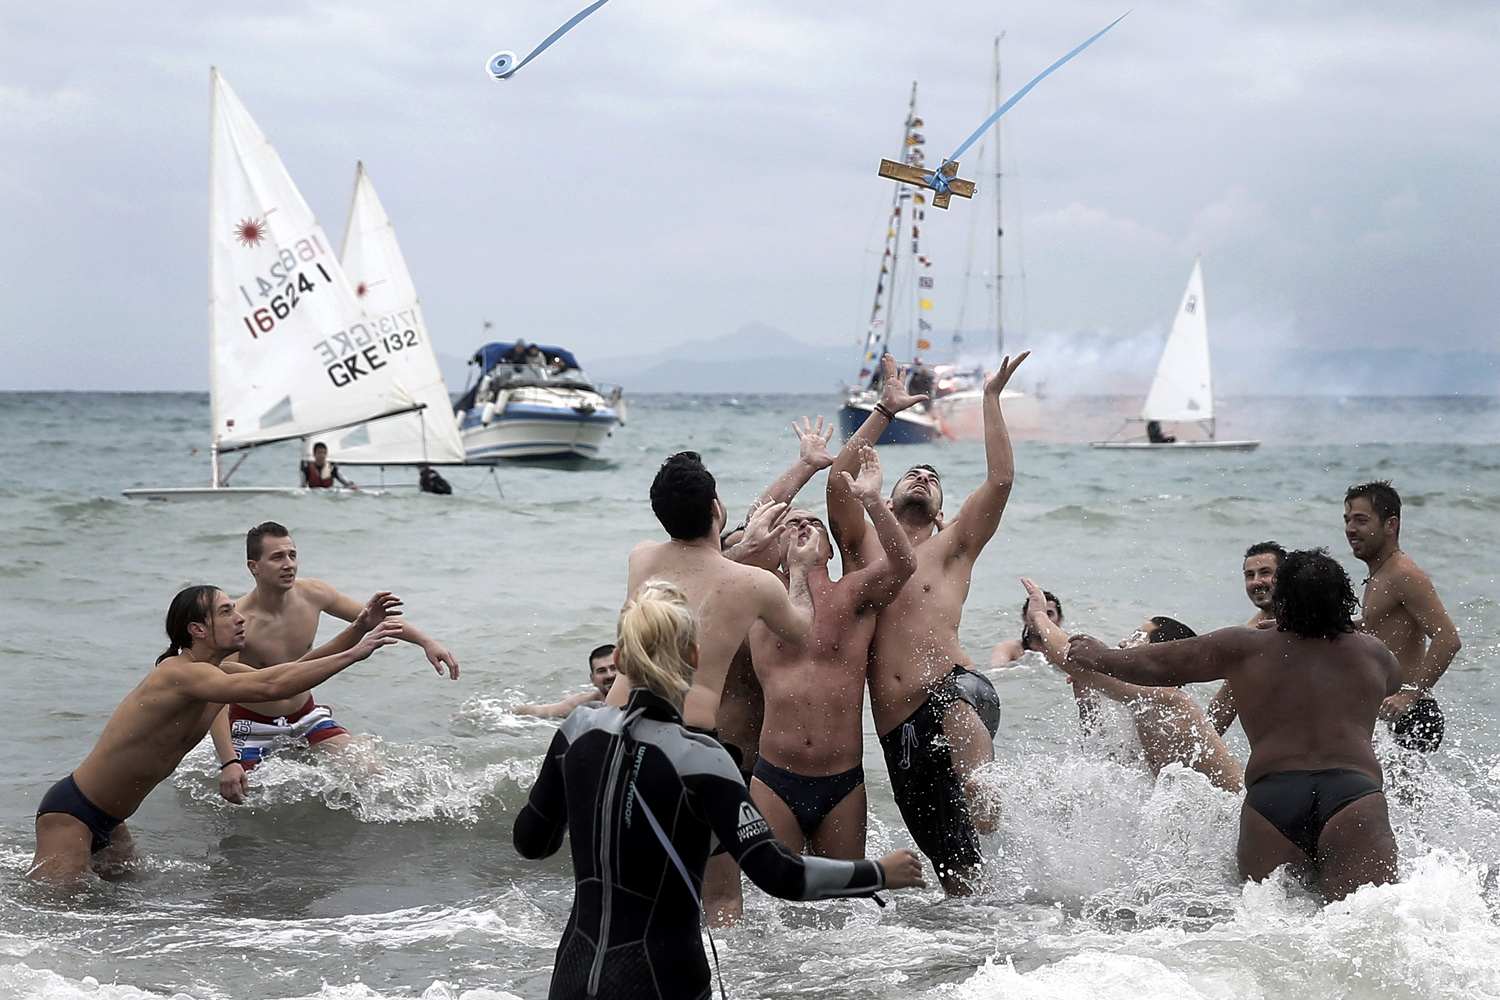 Jan. 6, 2014. A wooden cross is on the air as swimmers jump to retrieve it during a ceremony to bless the water in Greece's Flisvos beach, at Paleo Faliro near Athens.